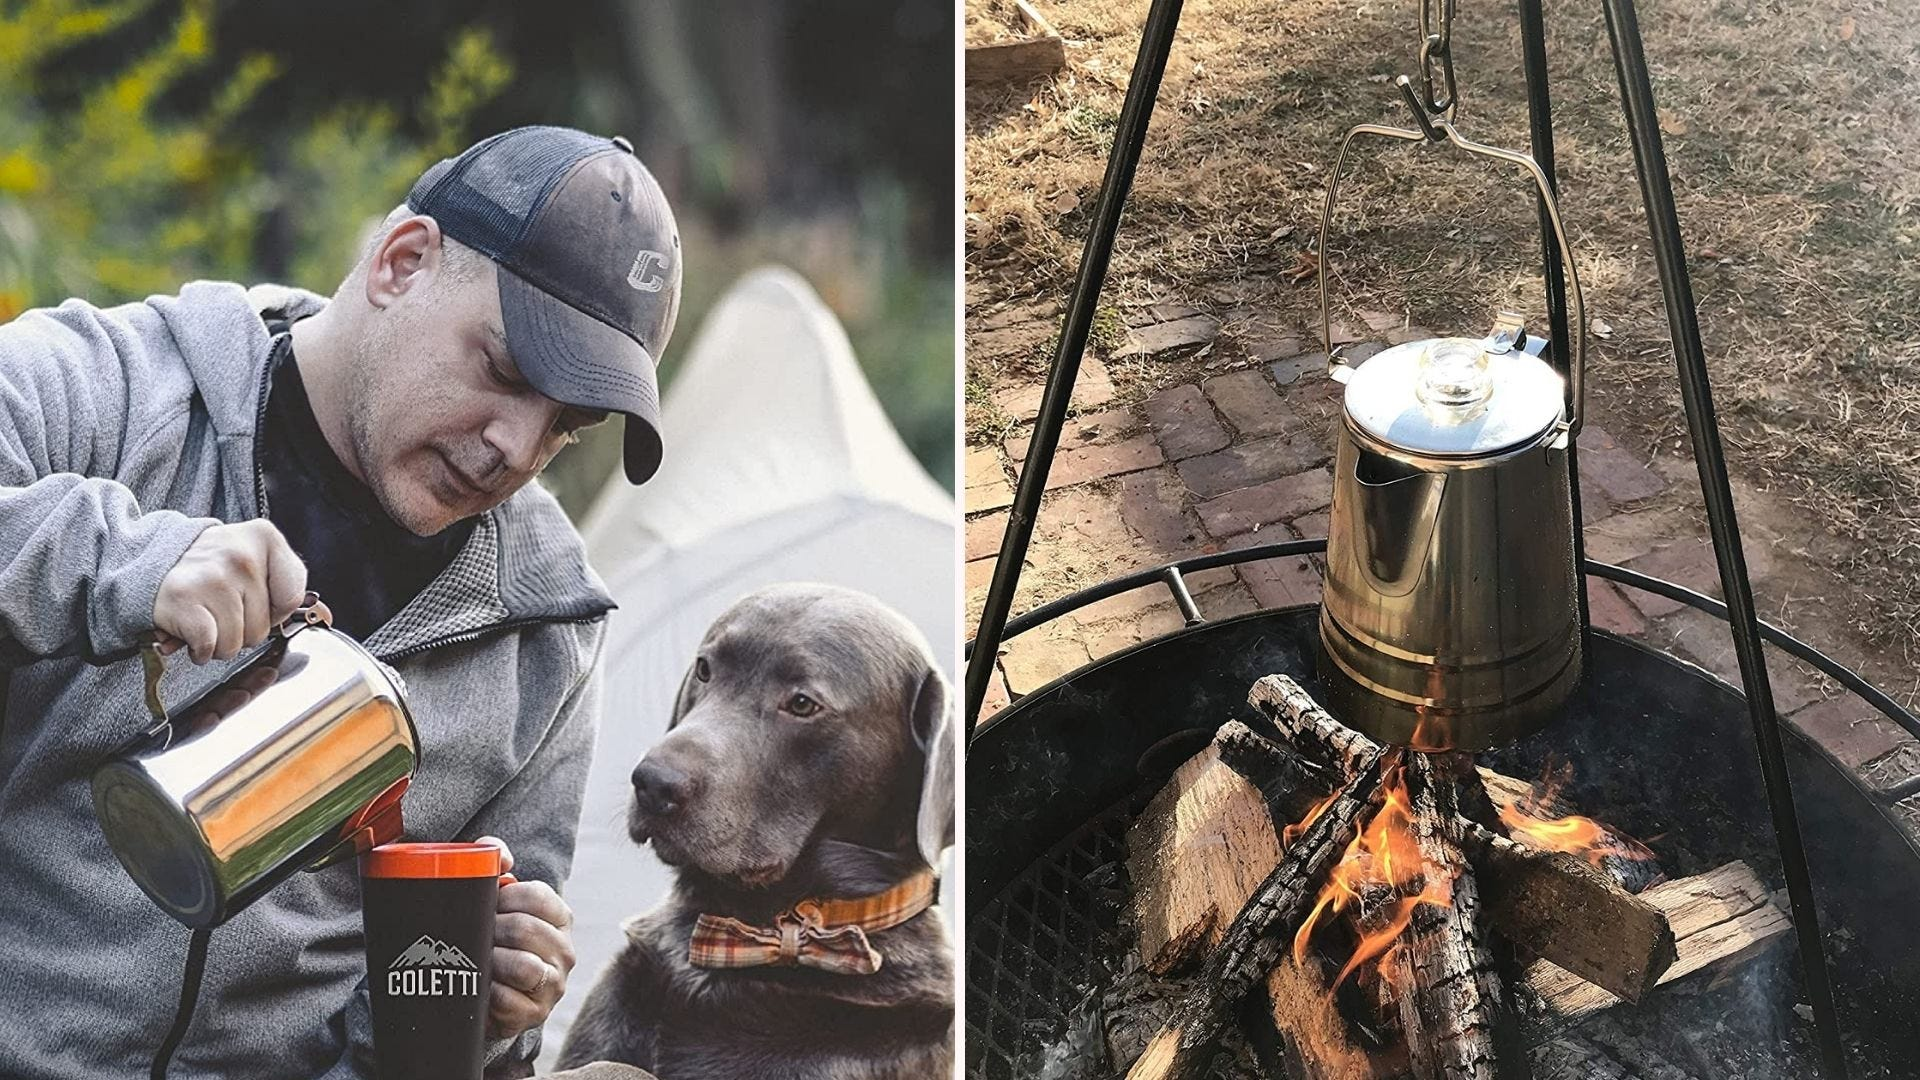 A camper pouring coffee from the COLETTI percolator in a cup while a Chocolate Labrador watches, and the percolator hanging over a campfire.